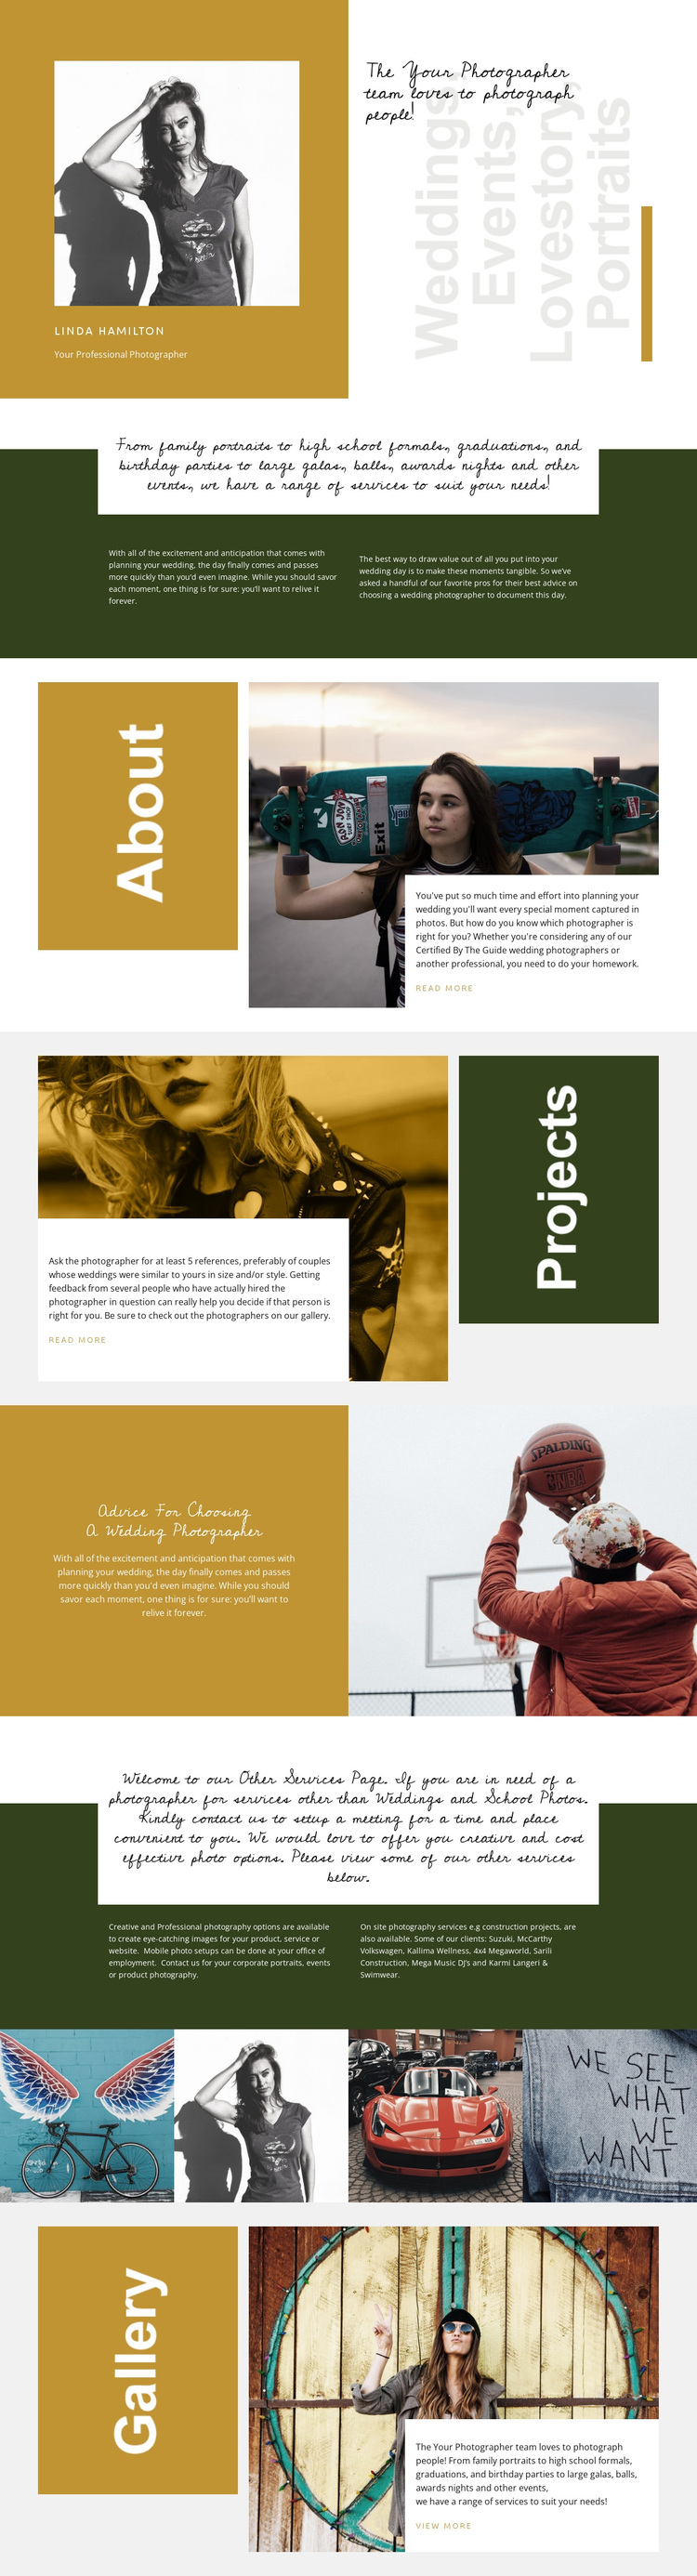 Fashion photography courses Template